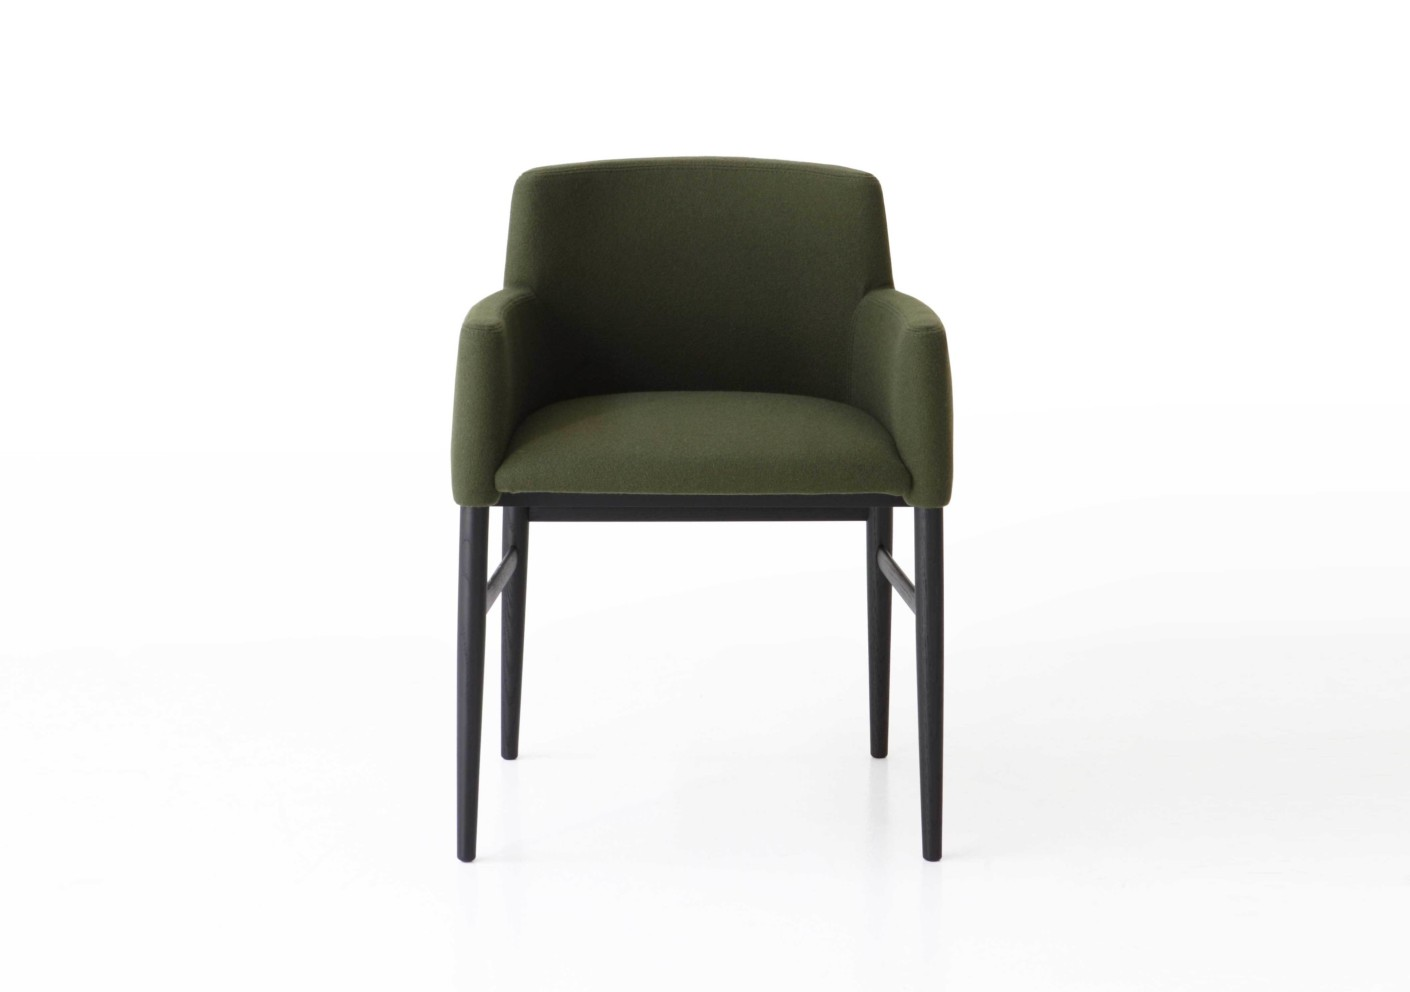 Pioggia chair by porro stylepark for Home articles furniture